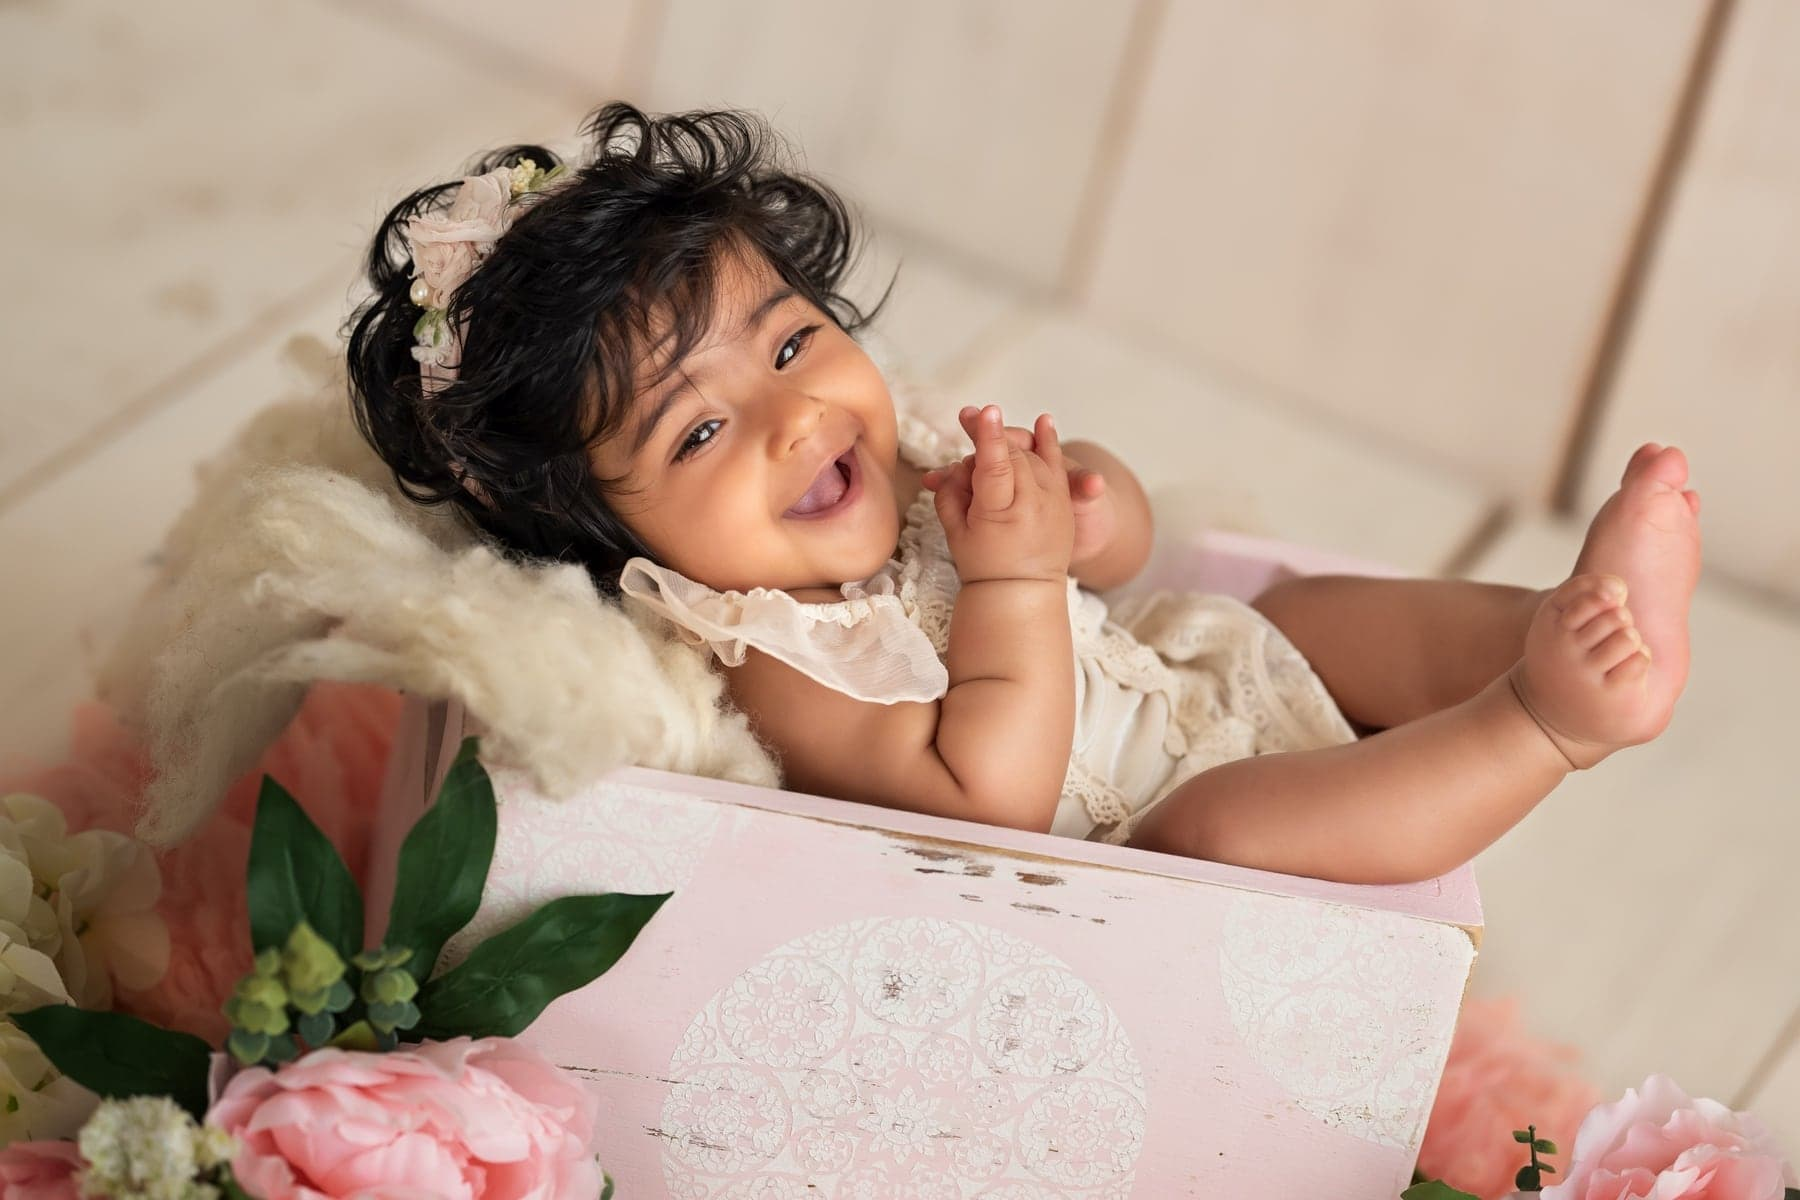 40901-white-wooden-background-baby-photography-delhi-4-5-6-months-baby-girl-photoshoot-gurgaon-anega-bawa